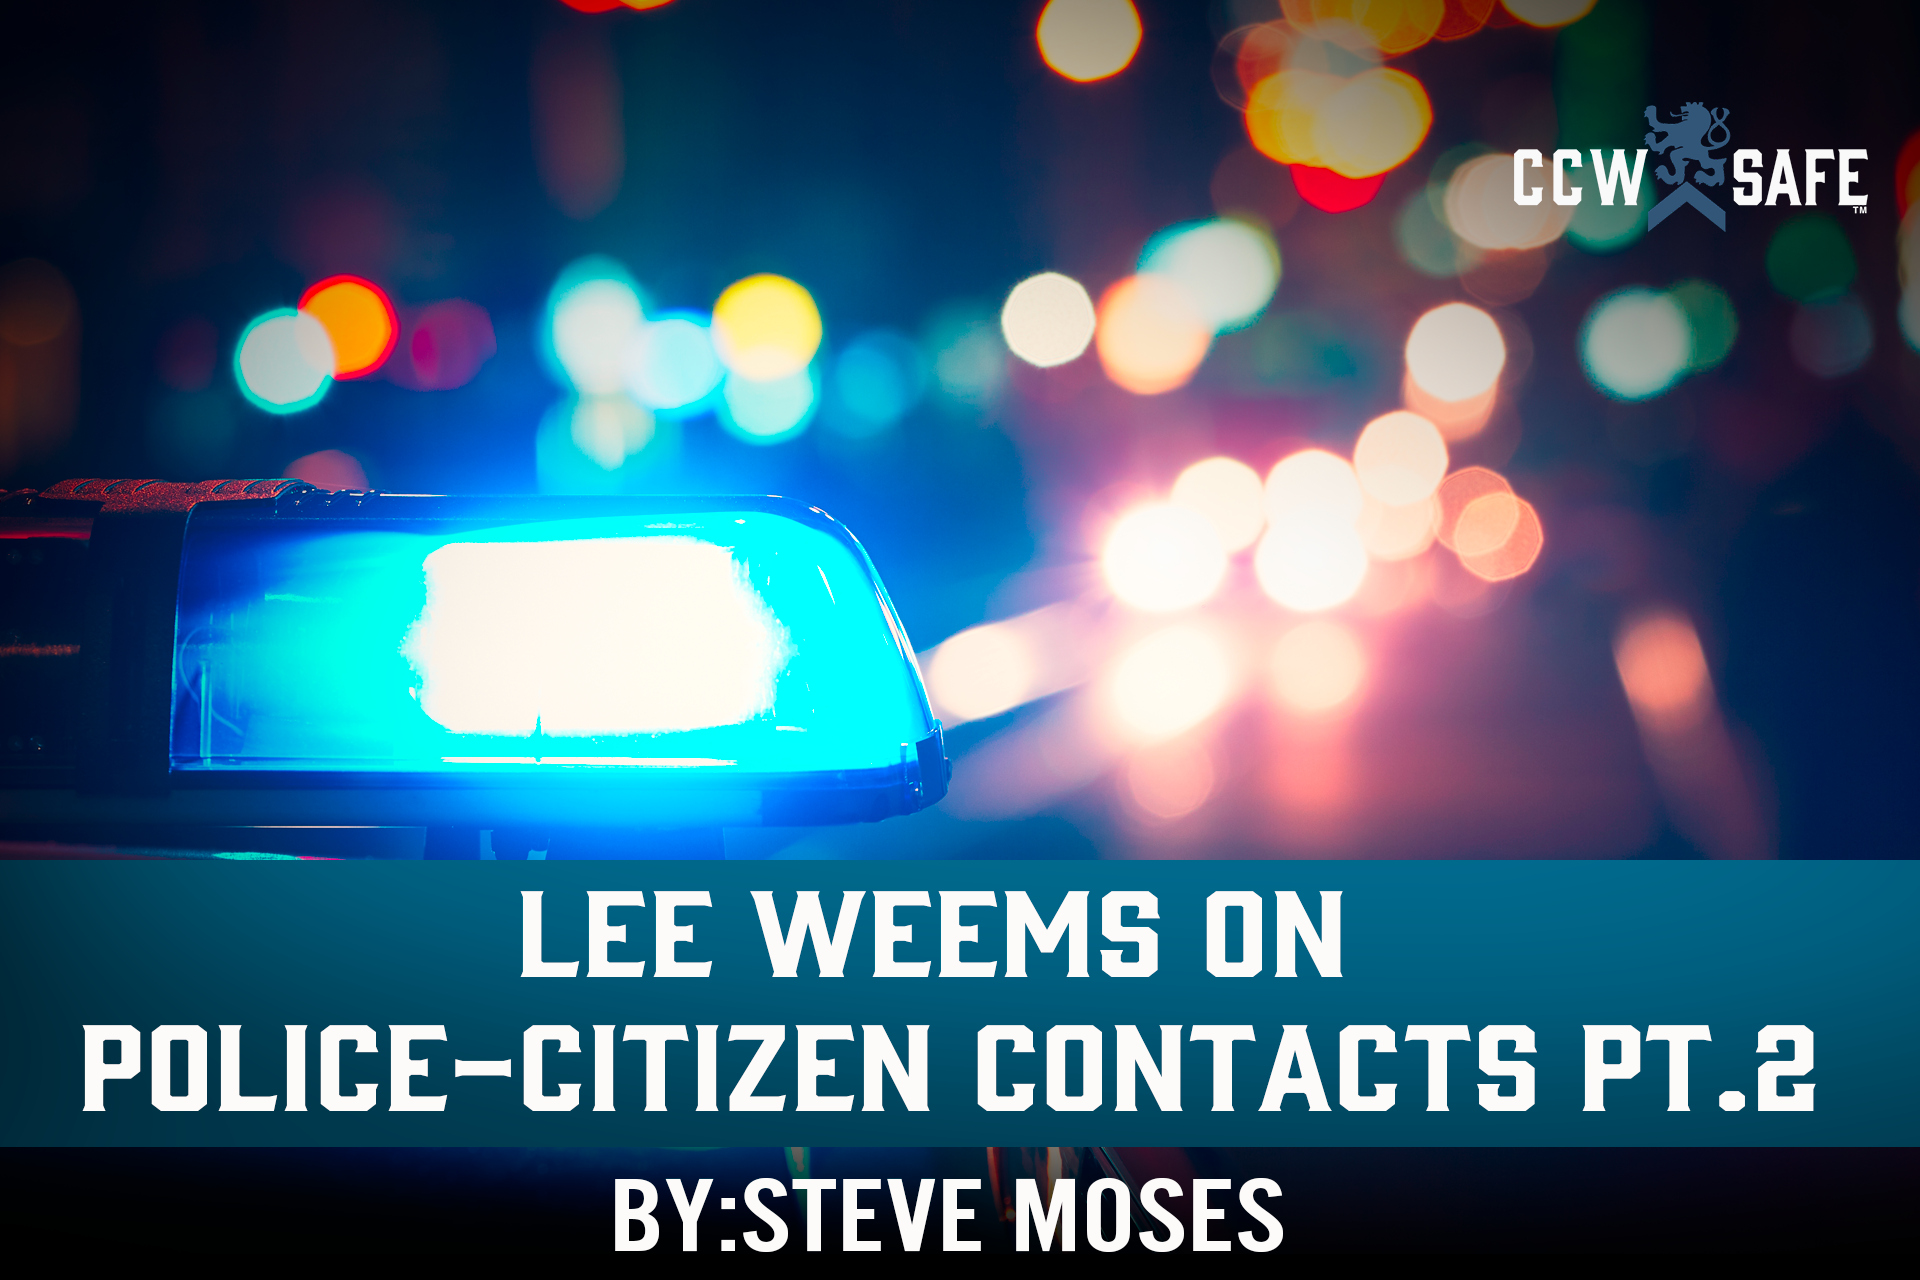 LEE WEEMS ON POLICE-CITIZEN CONTACTS PT.2